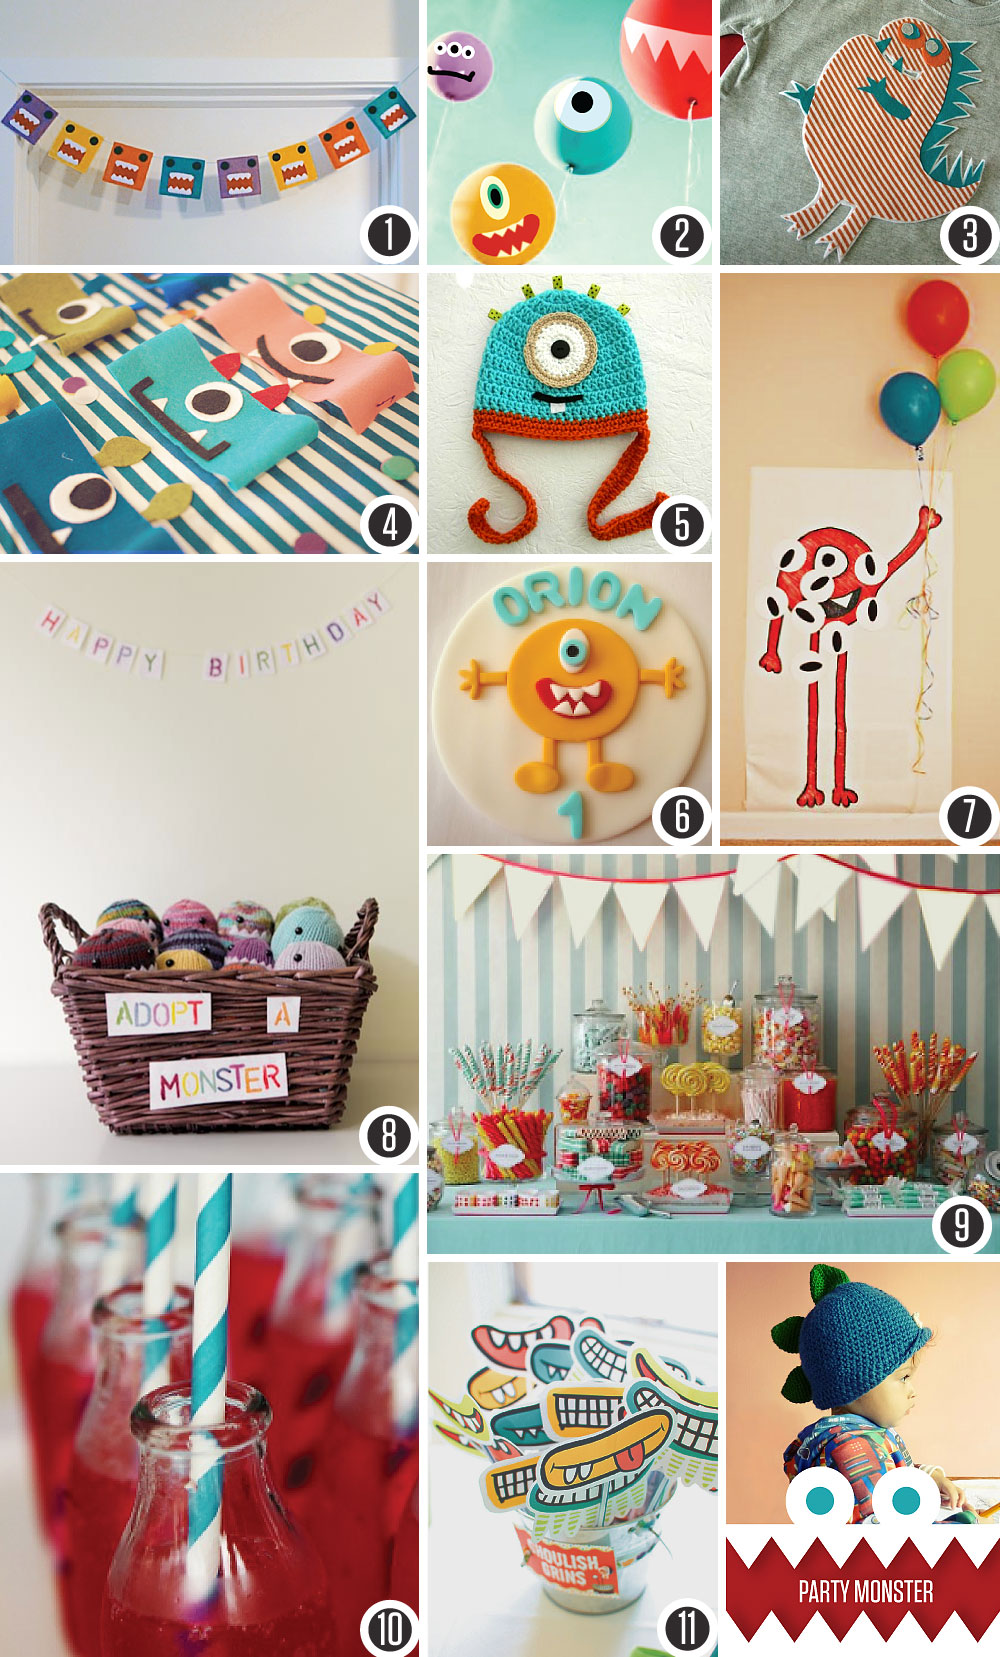 Party Monster; a birthday board